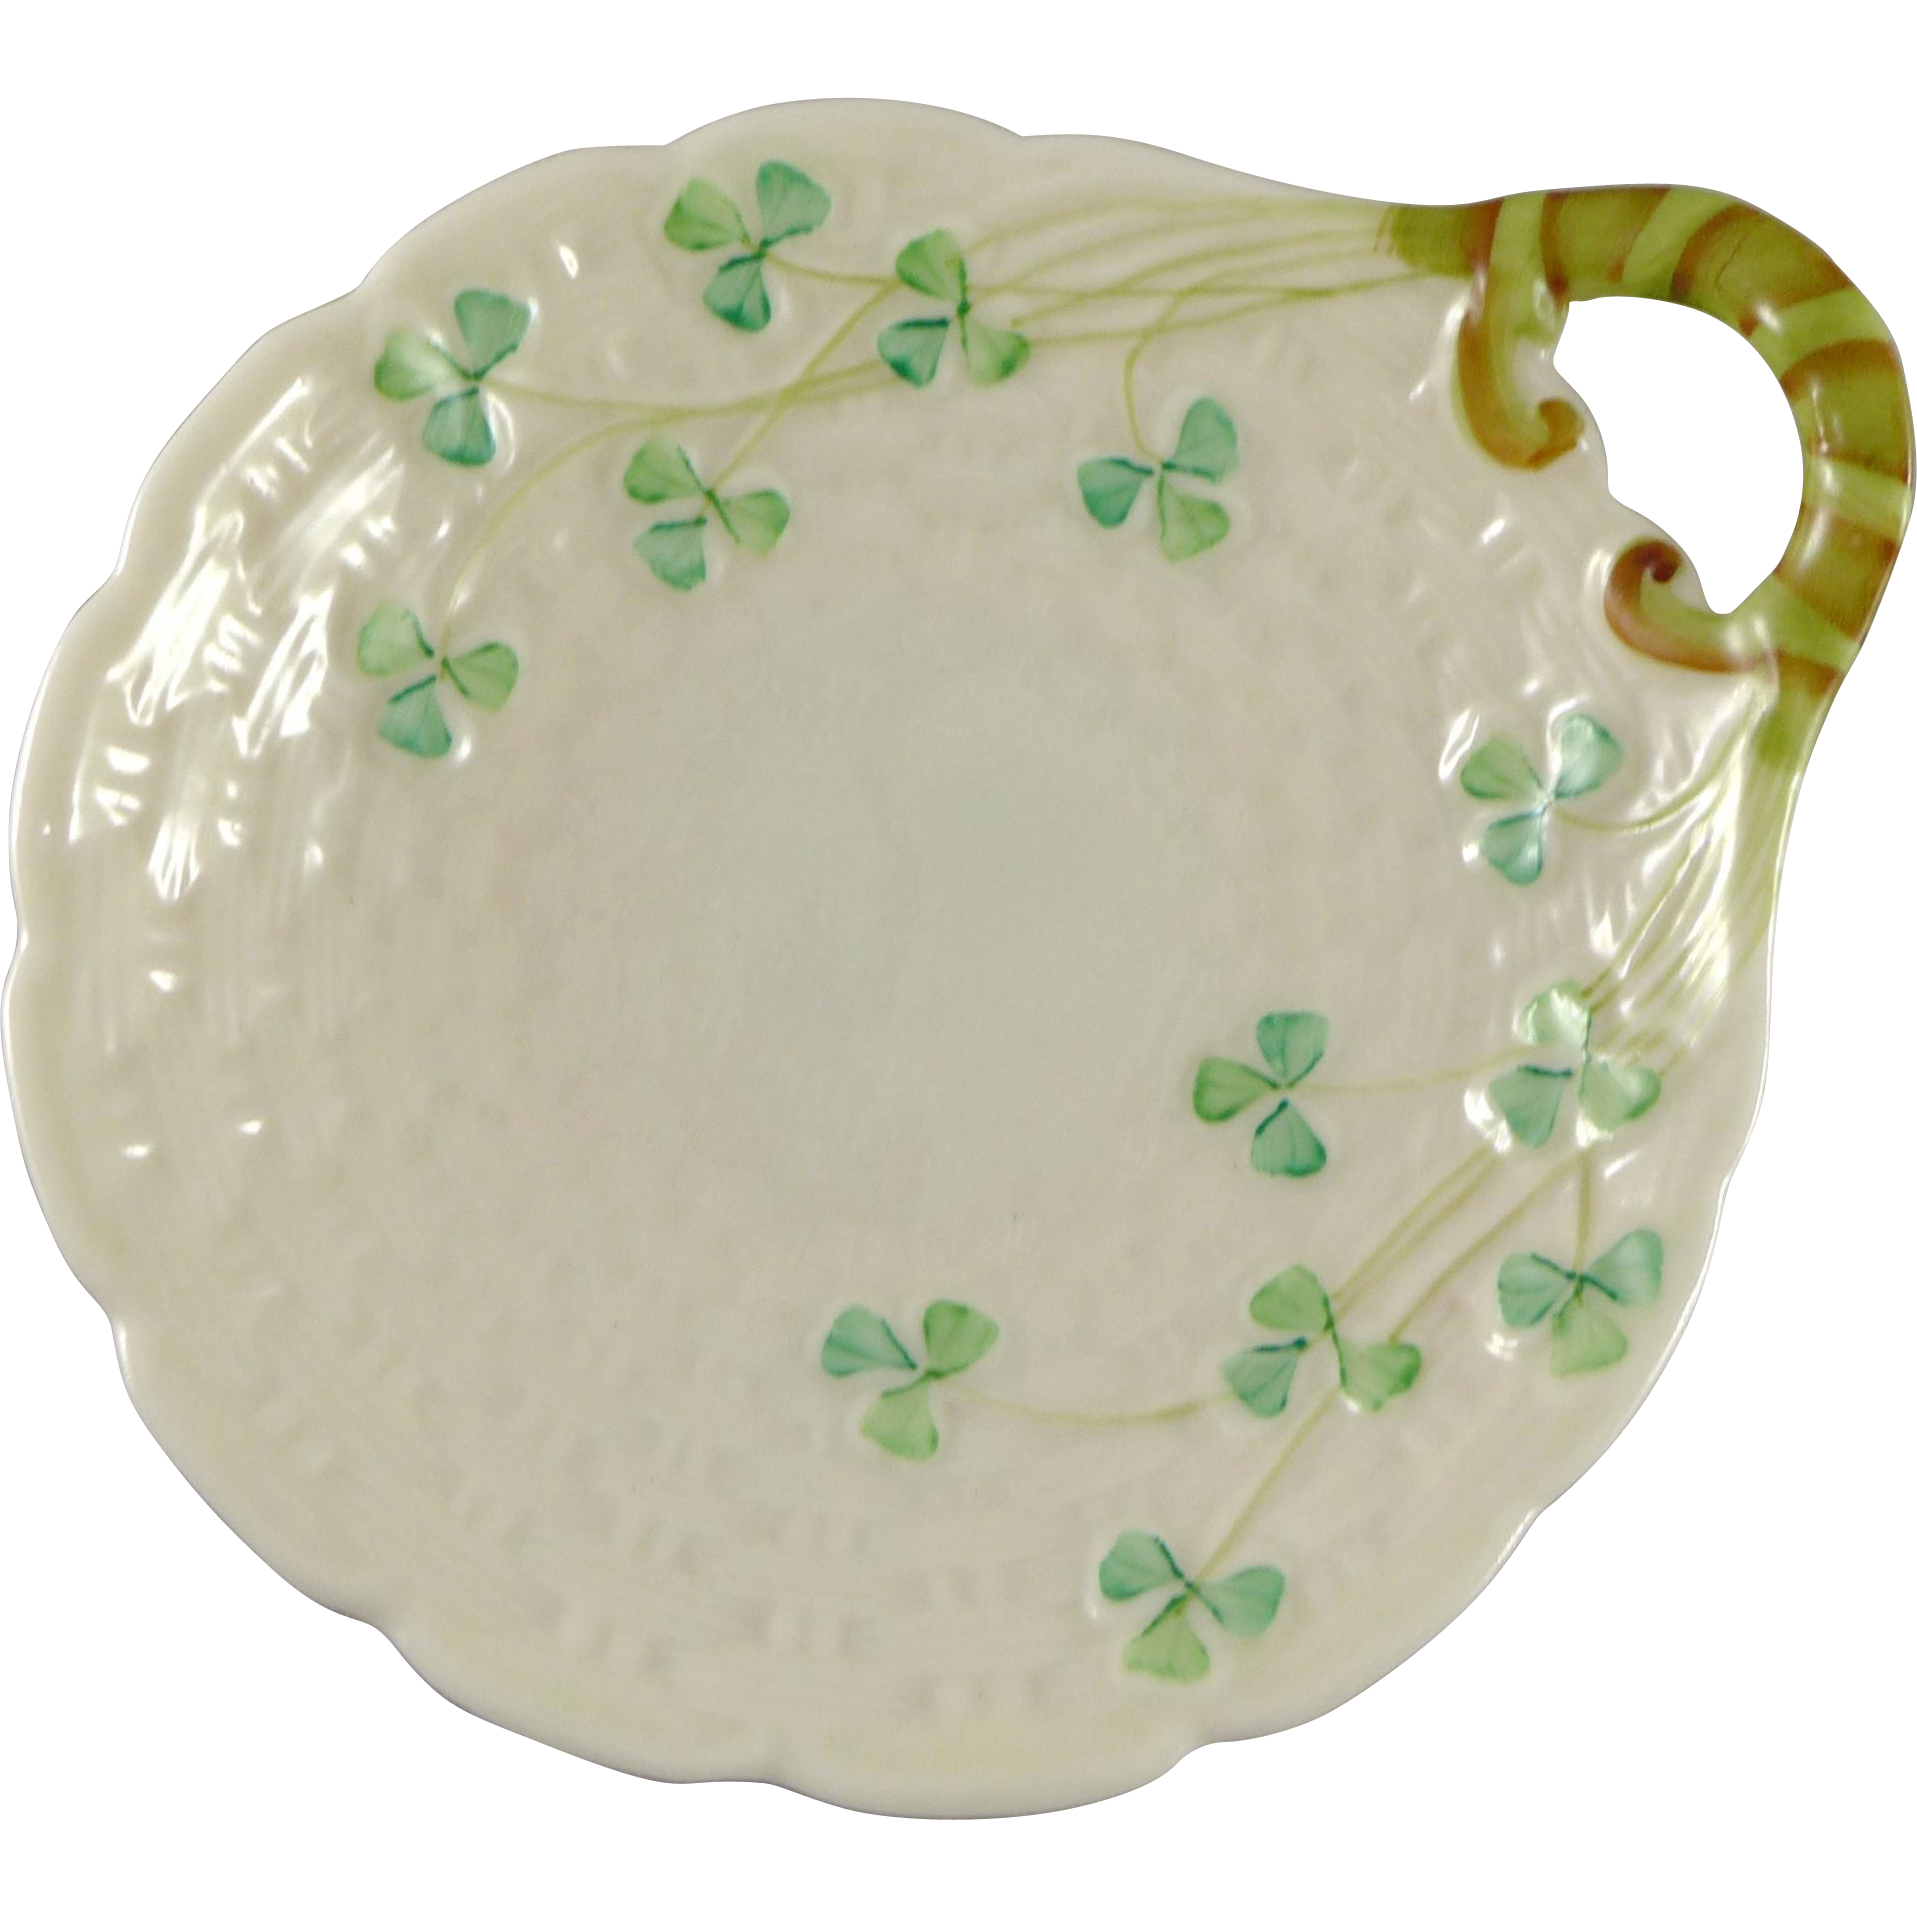 Vintage Belleek Shamrock Butter Server Dish, 2nd Green Mark